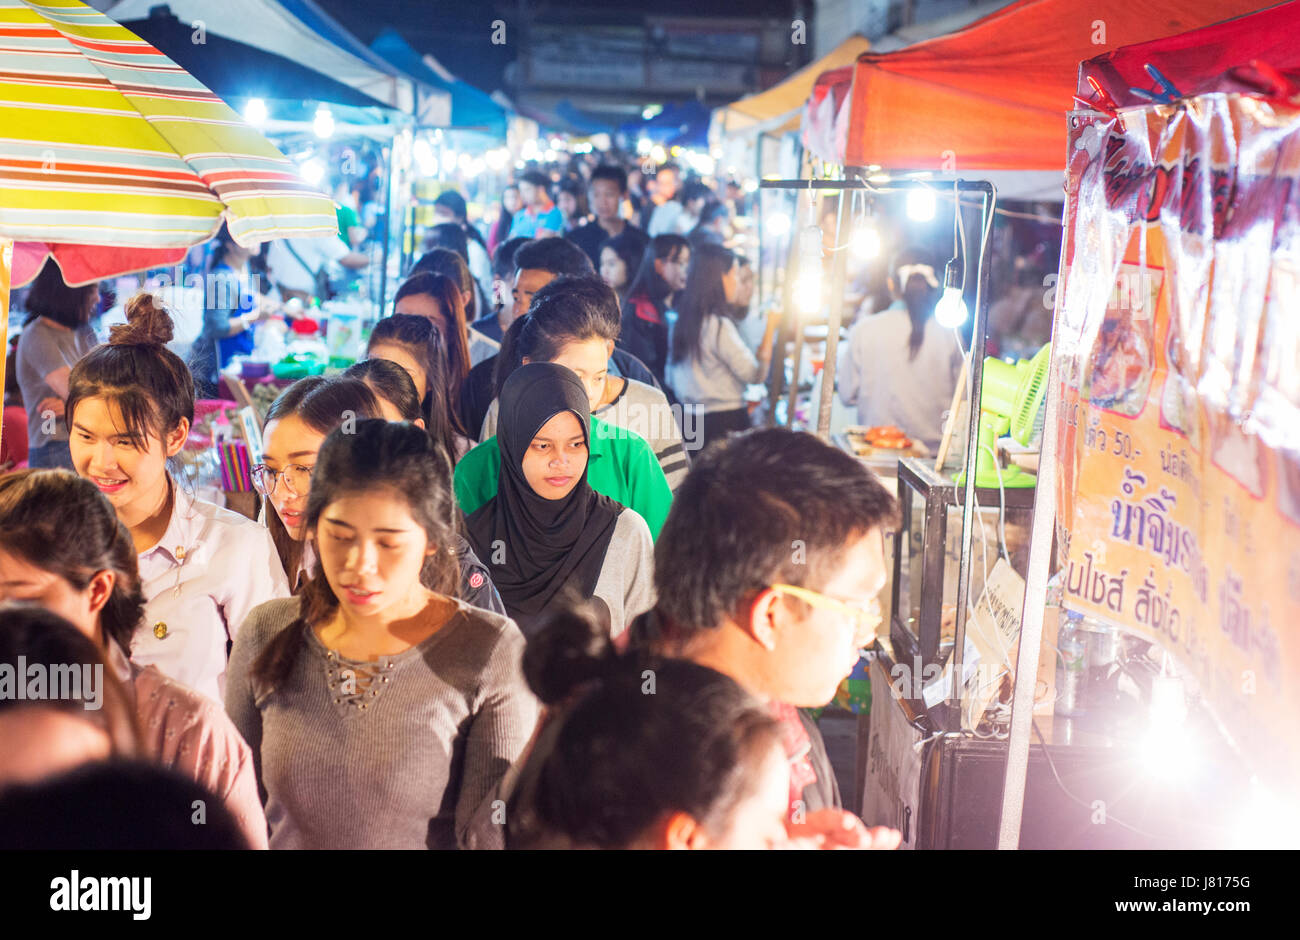 Crowds at a night market near Chiang Rai.  One young Muslim woman among the Buddhist Thais. - Stock Image